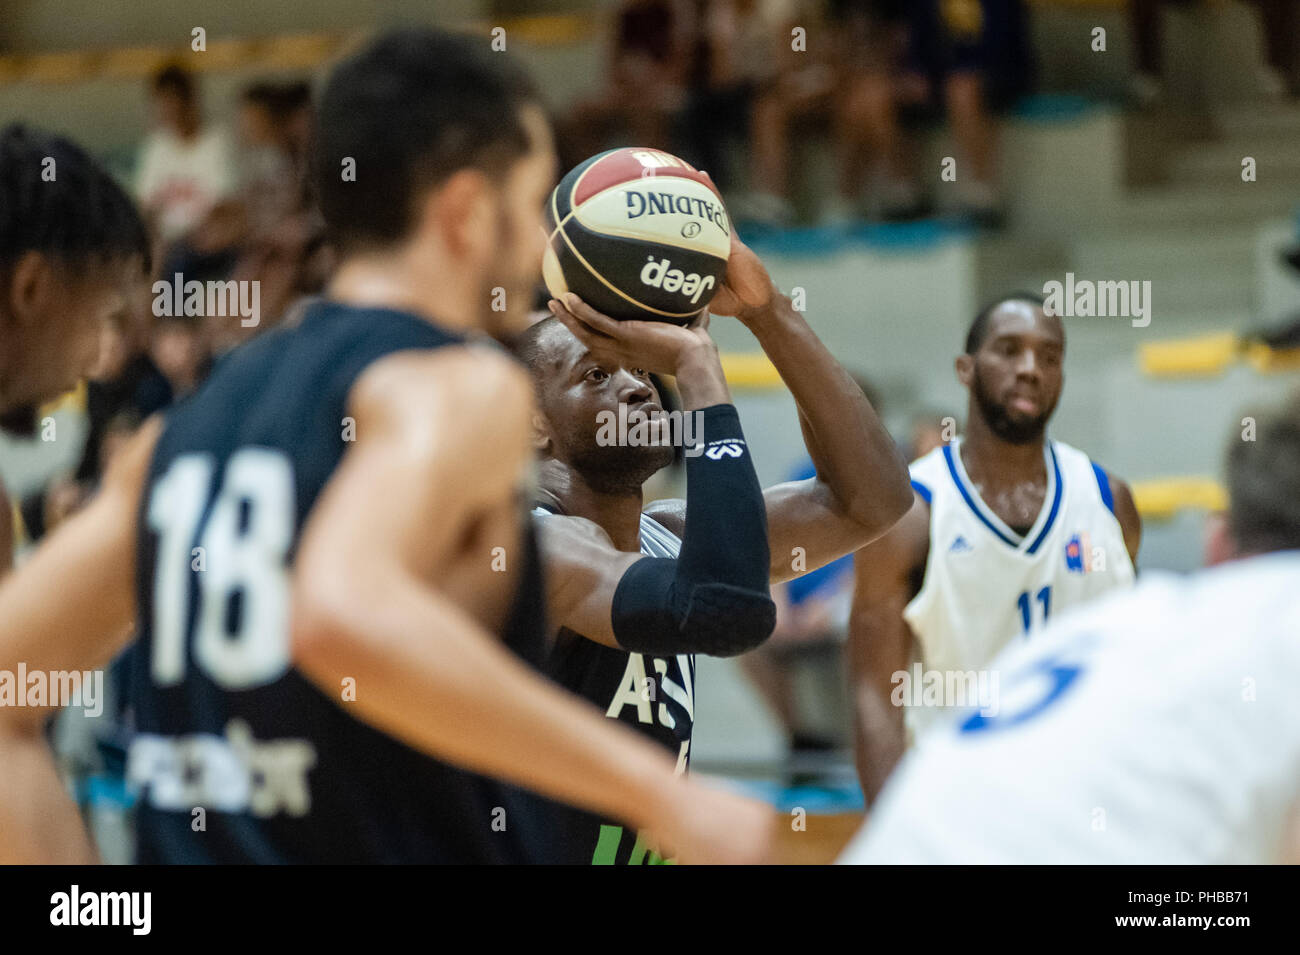 Belleville-sur-Saône, France. 31st August 2018.  Ain Star Games is a preparation tournament - The match was against ASVEL and KK Mornar Bar (88-68). Charles Kahudi with the ball. Credit: FRANCK CHAPOLARD/Alamy Live News - Stock Image